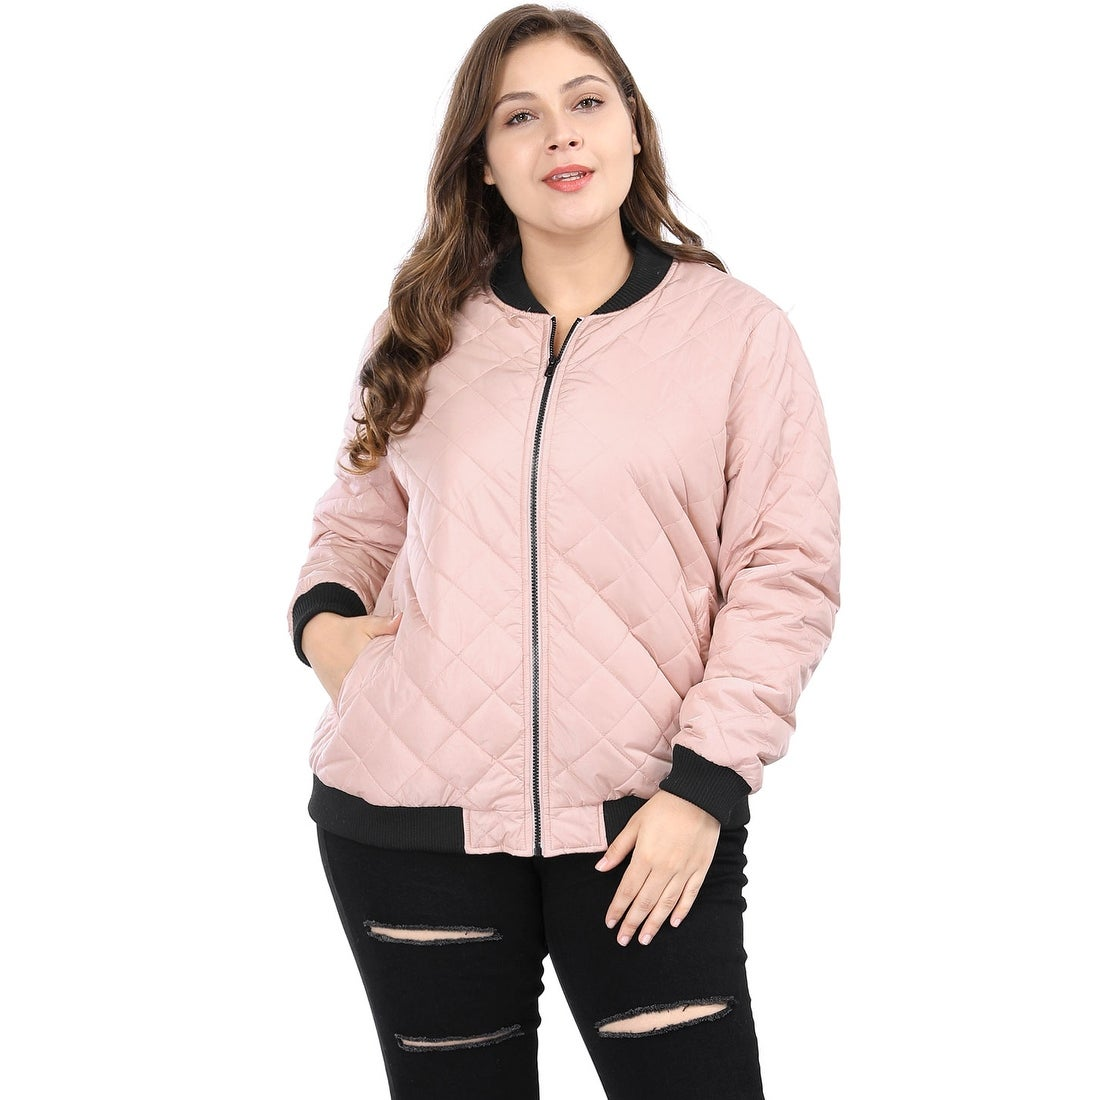 Women S Plus Size Contrast Trim Zip Up Quilted Jacket Pink